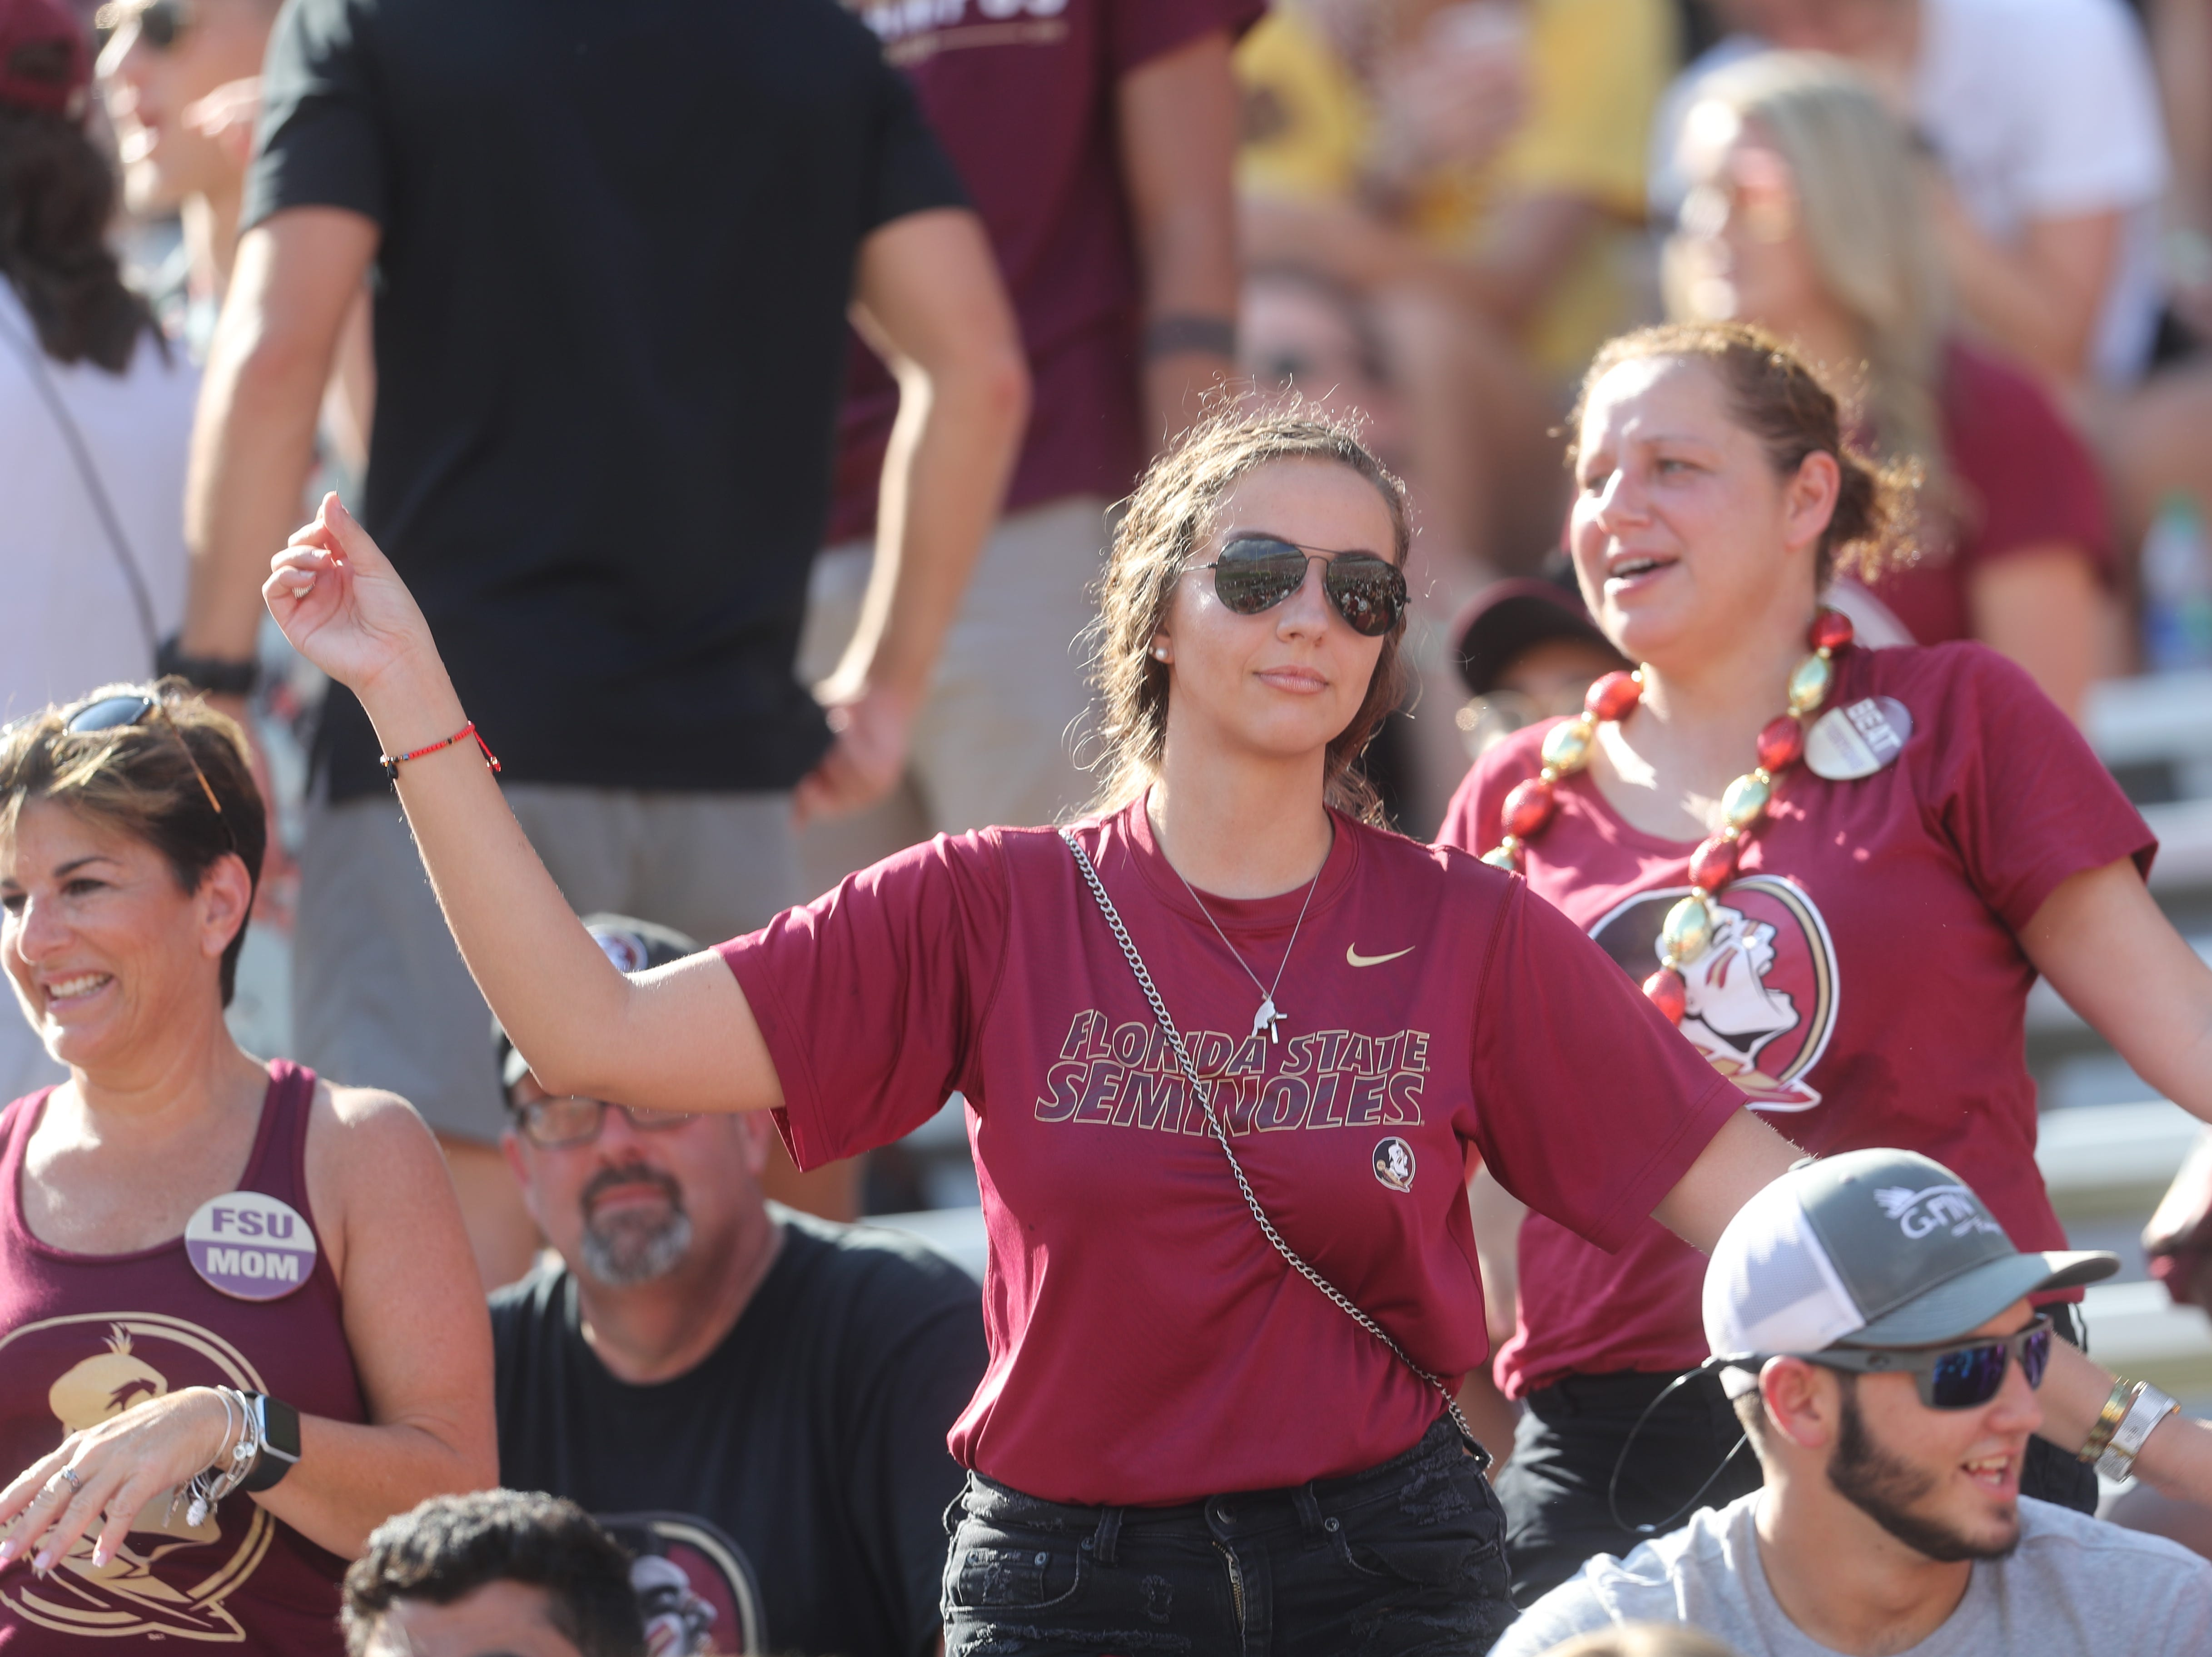 Fans dance during a game between the Florida State University Seminoles and the Northern Illinois University Huskies at Doak S. Campbell Stadium in Tallahassee, Fla. Saturday, September 22, 2018.